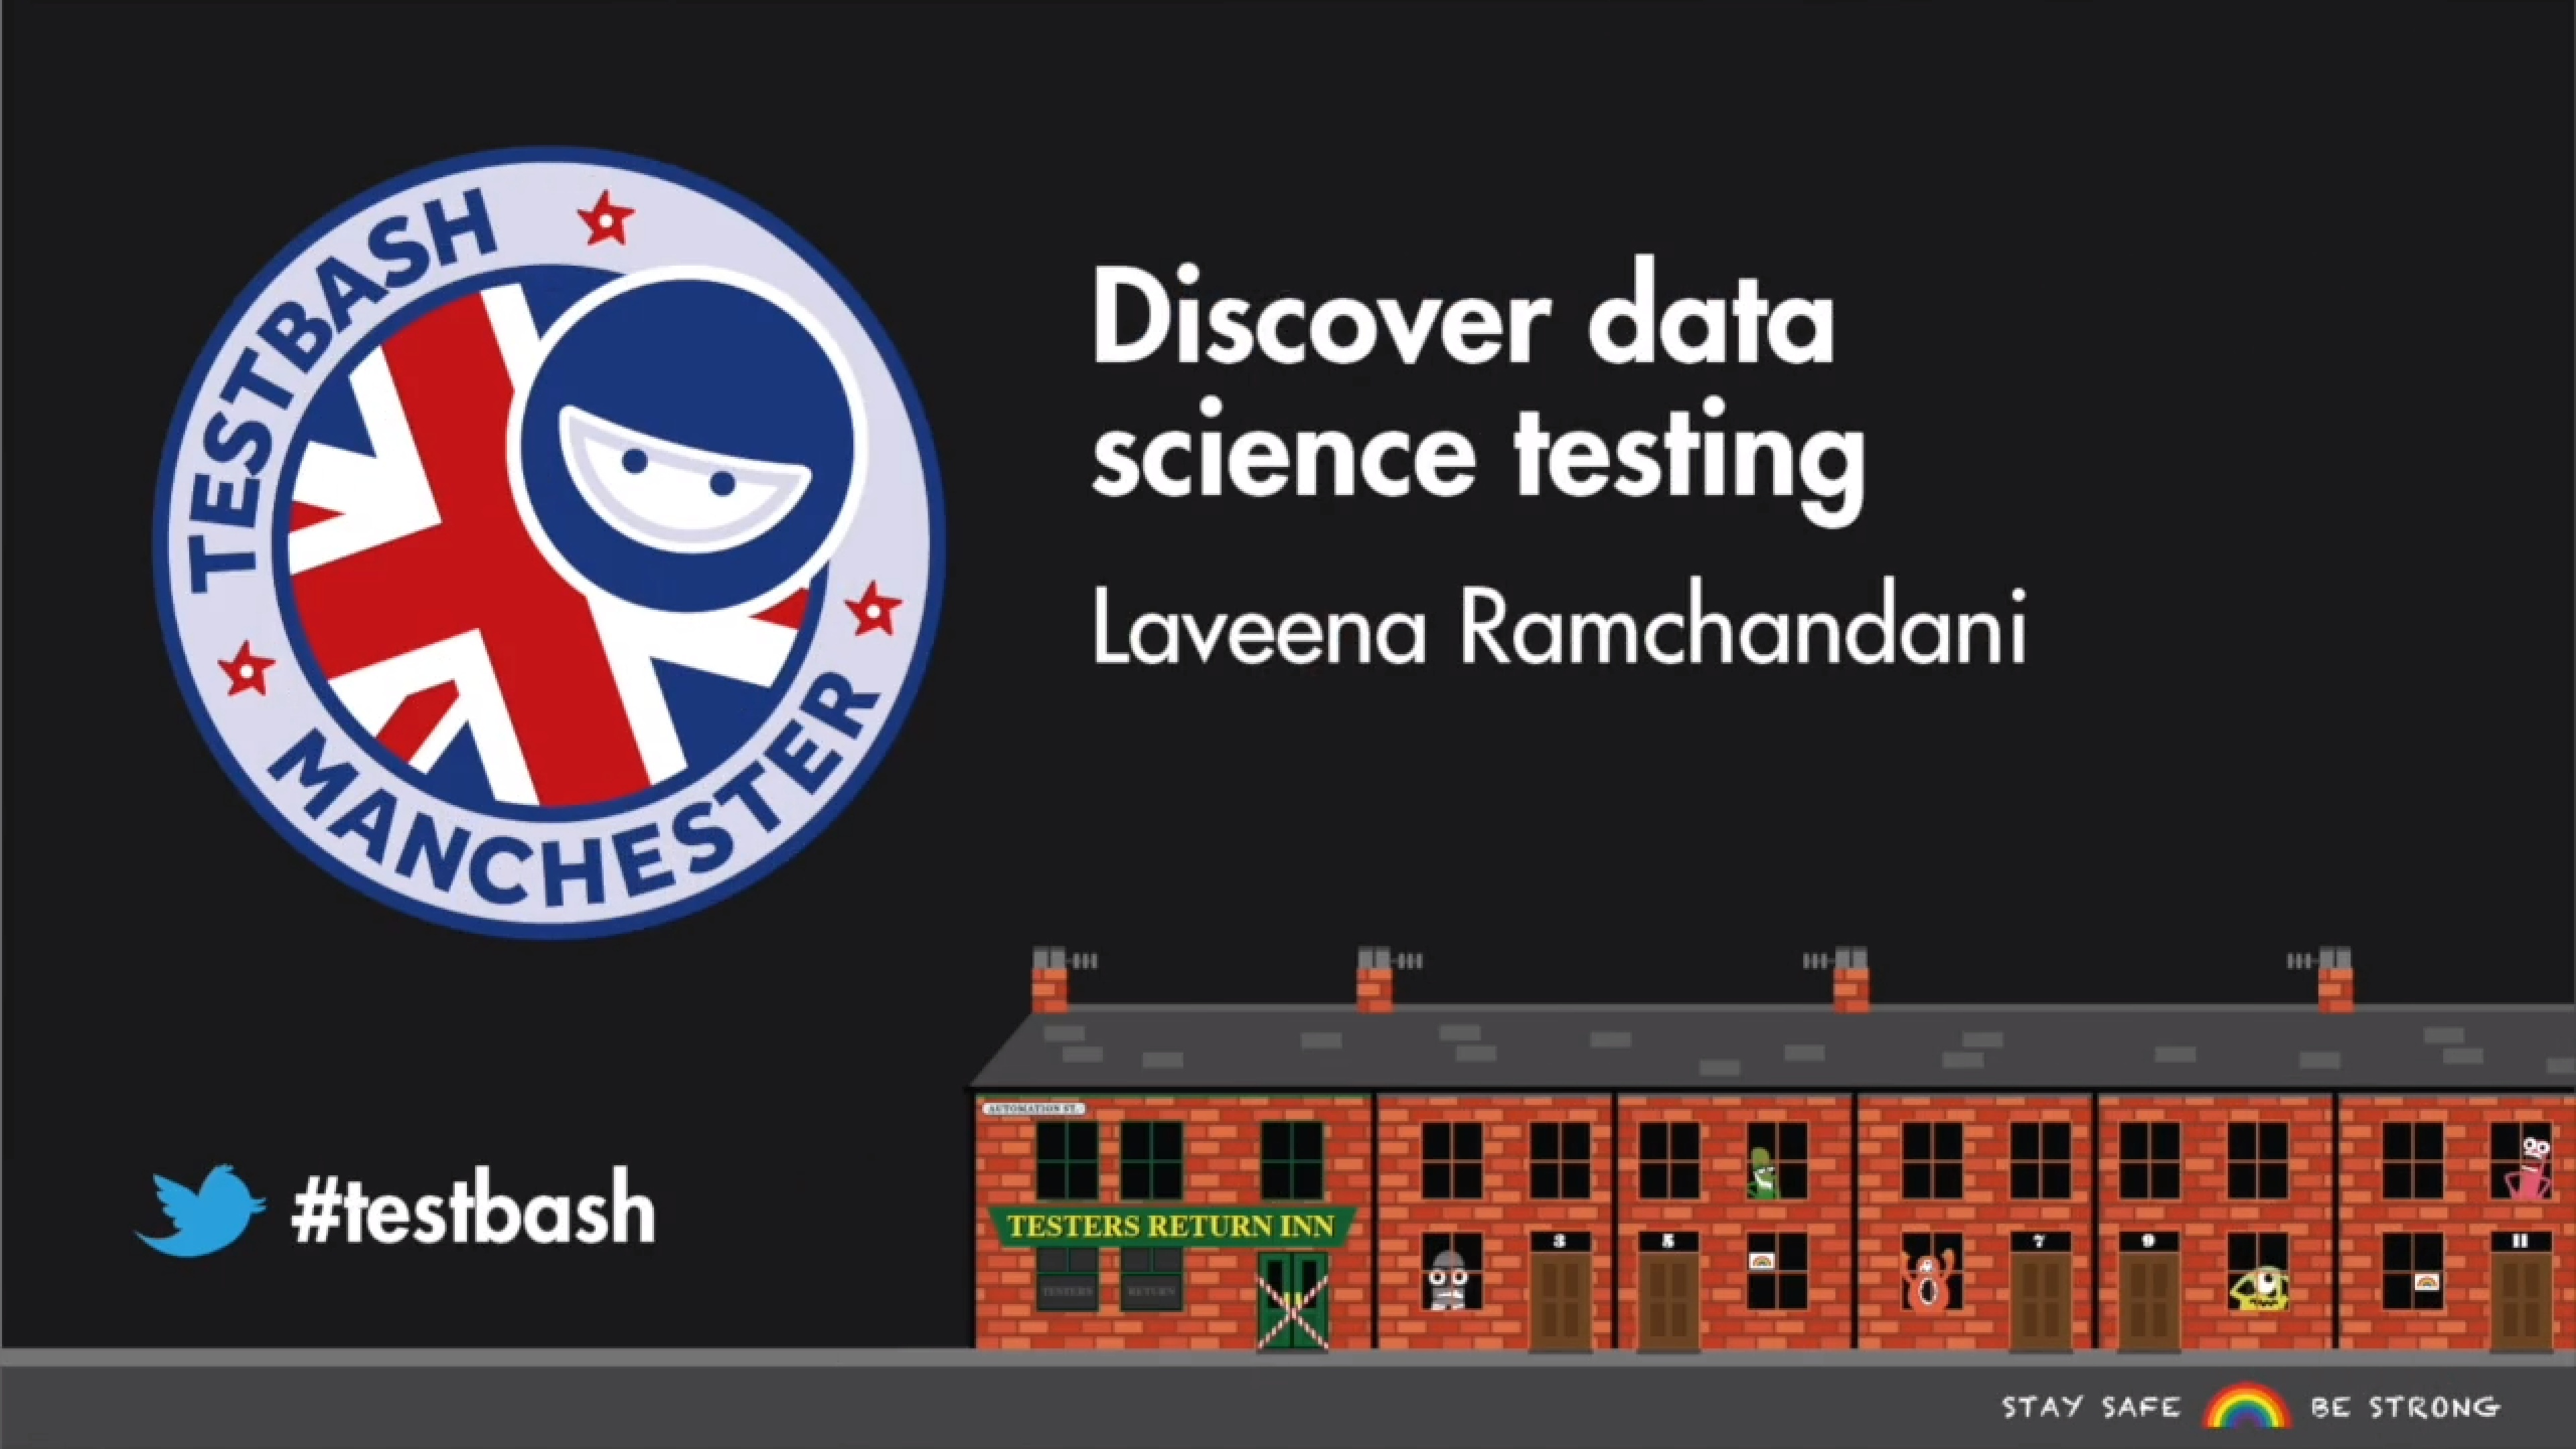 Discover Data Science Testing - Laveena Ramchandani